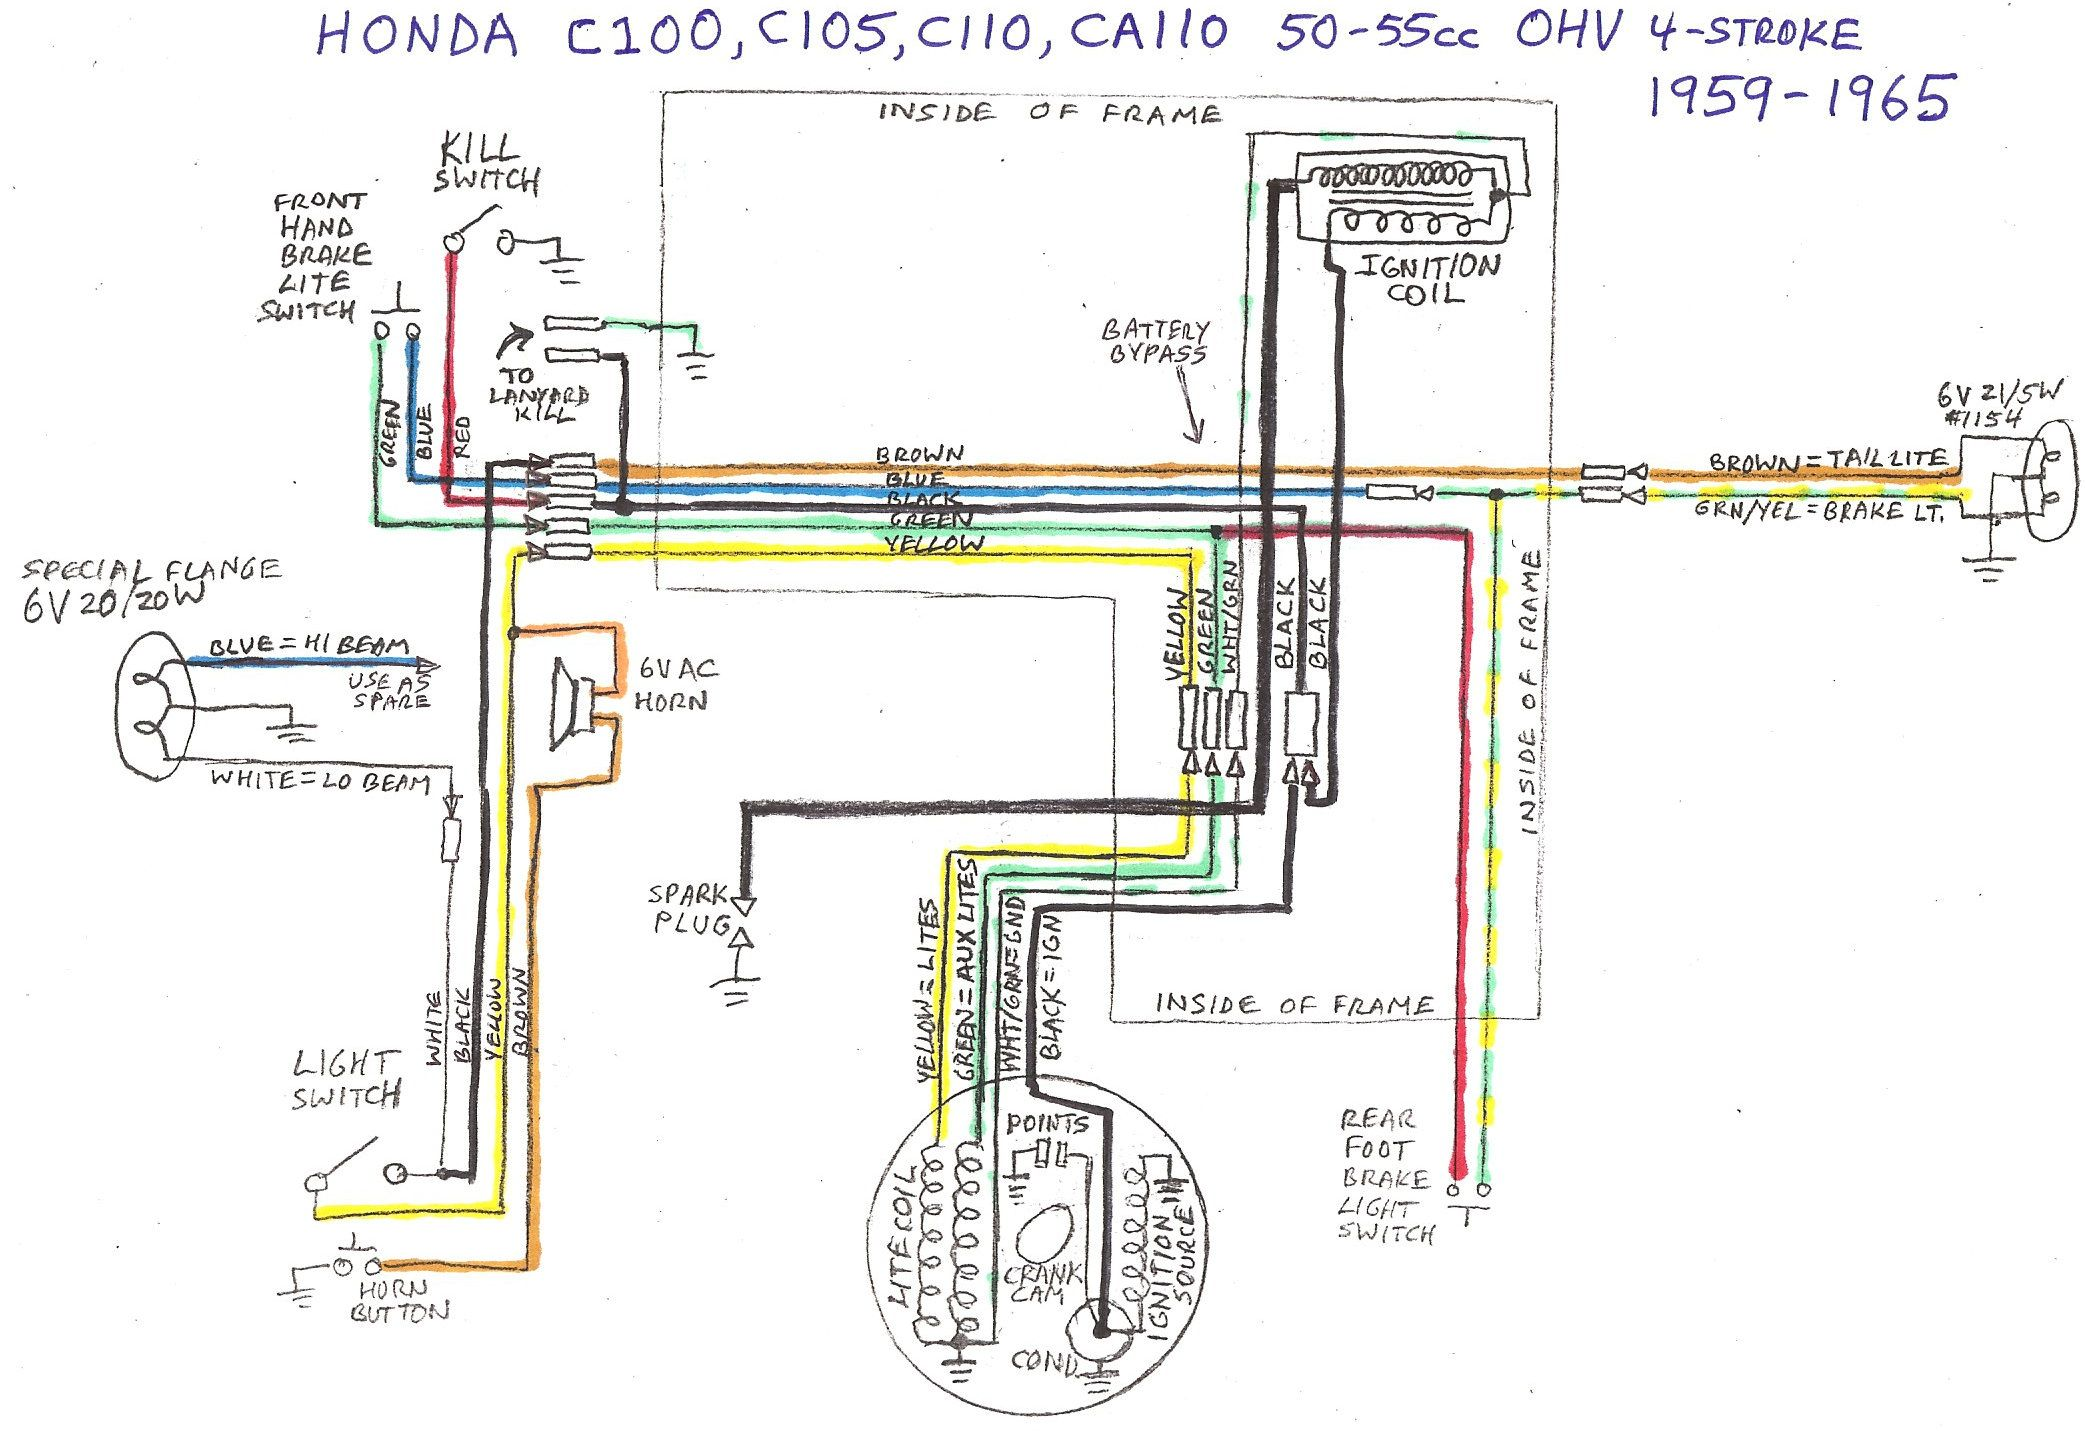 Honda Moped Diagram Wiring Third Level Chinese 1964 50 Scooter Diagrams Schematic E40d